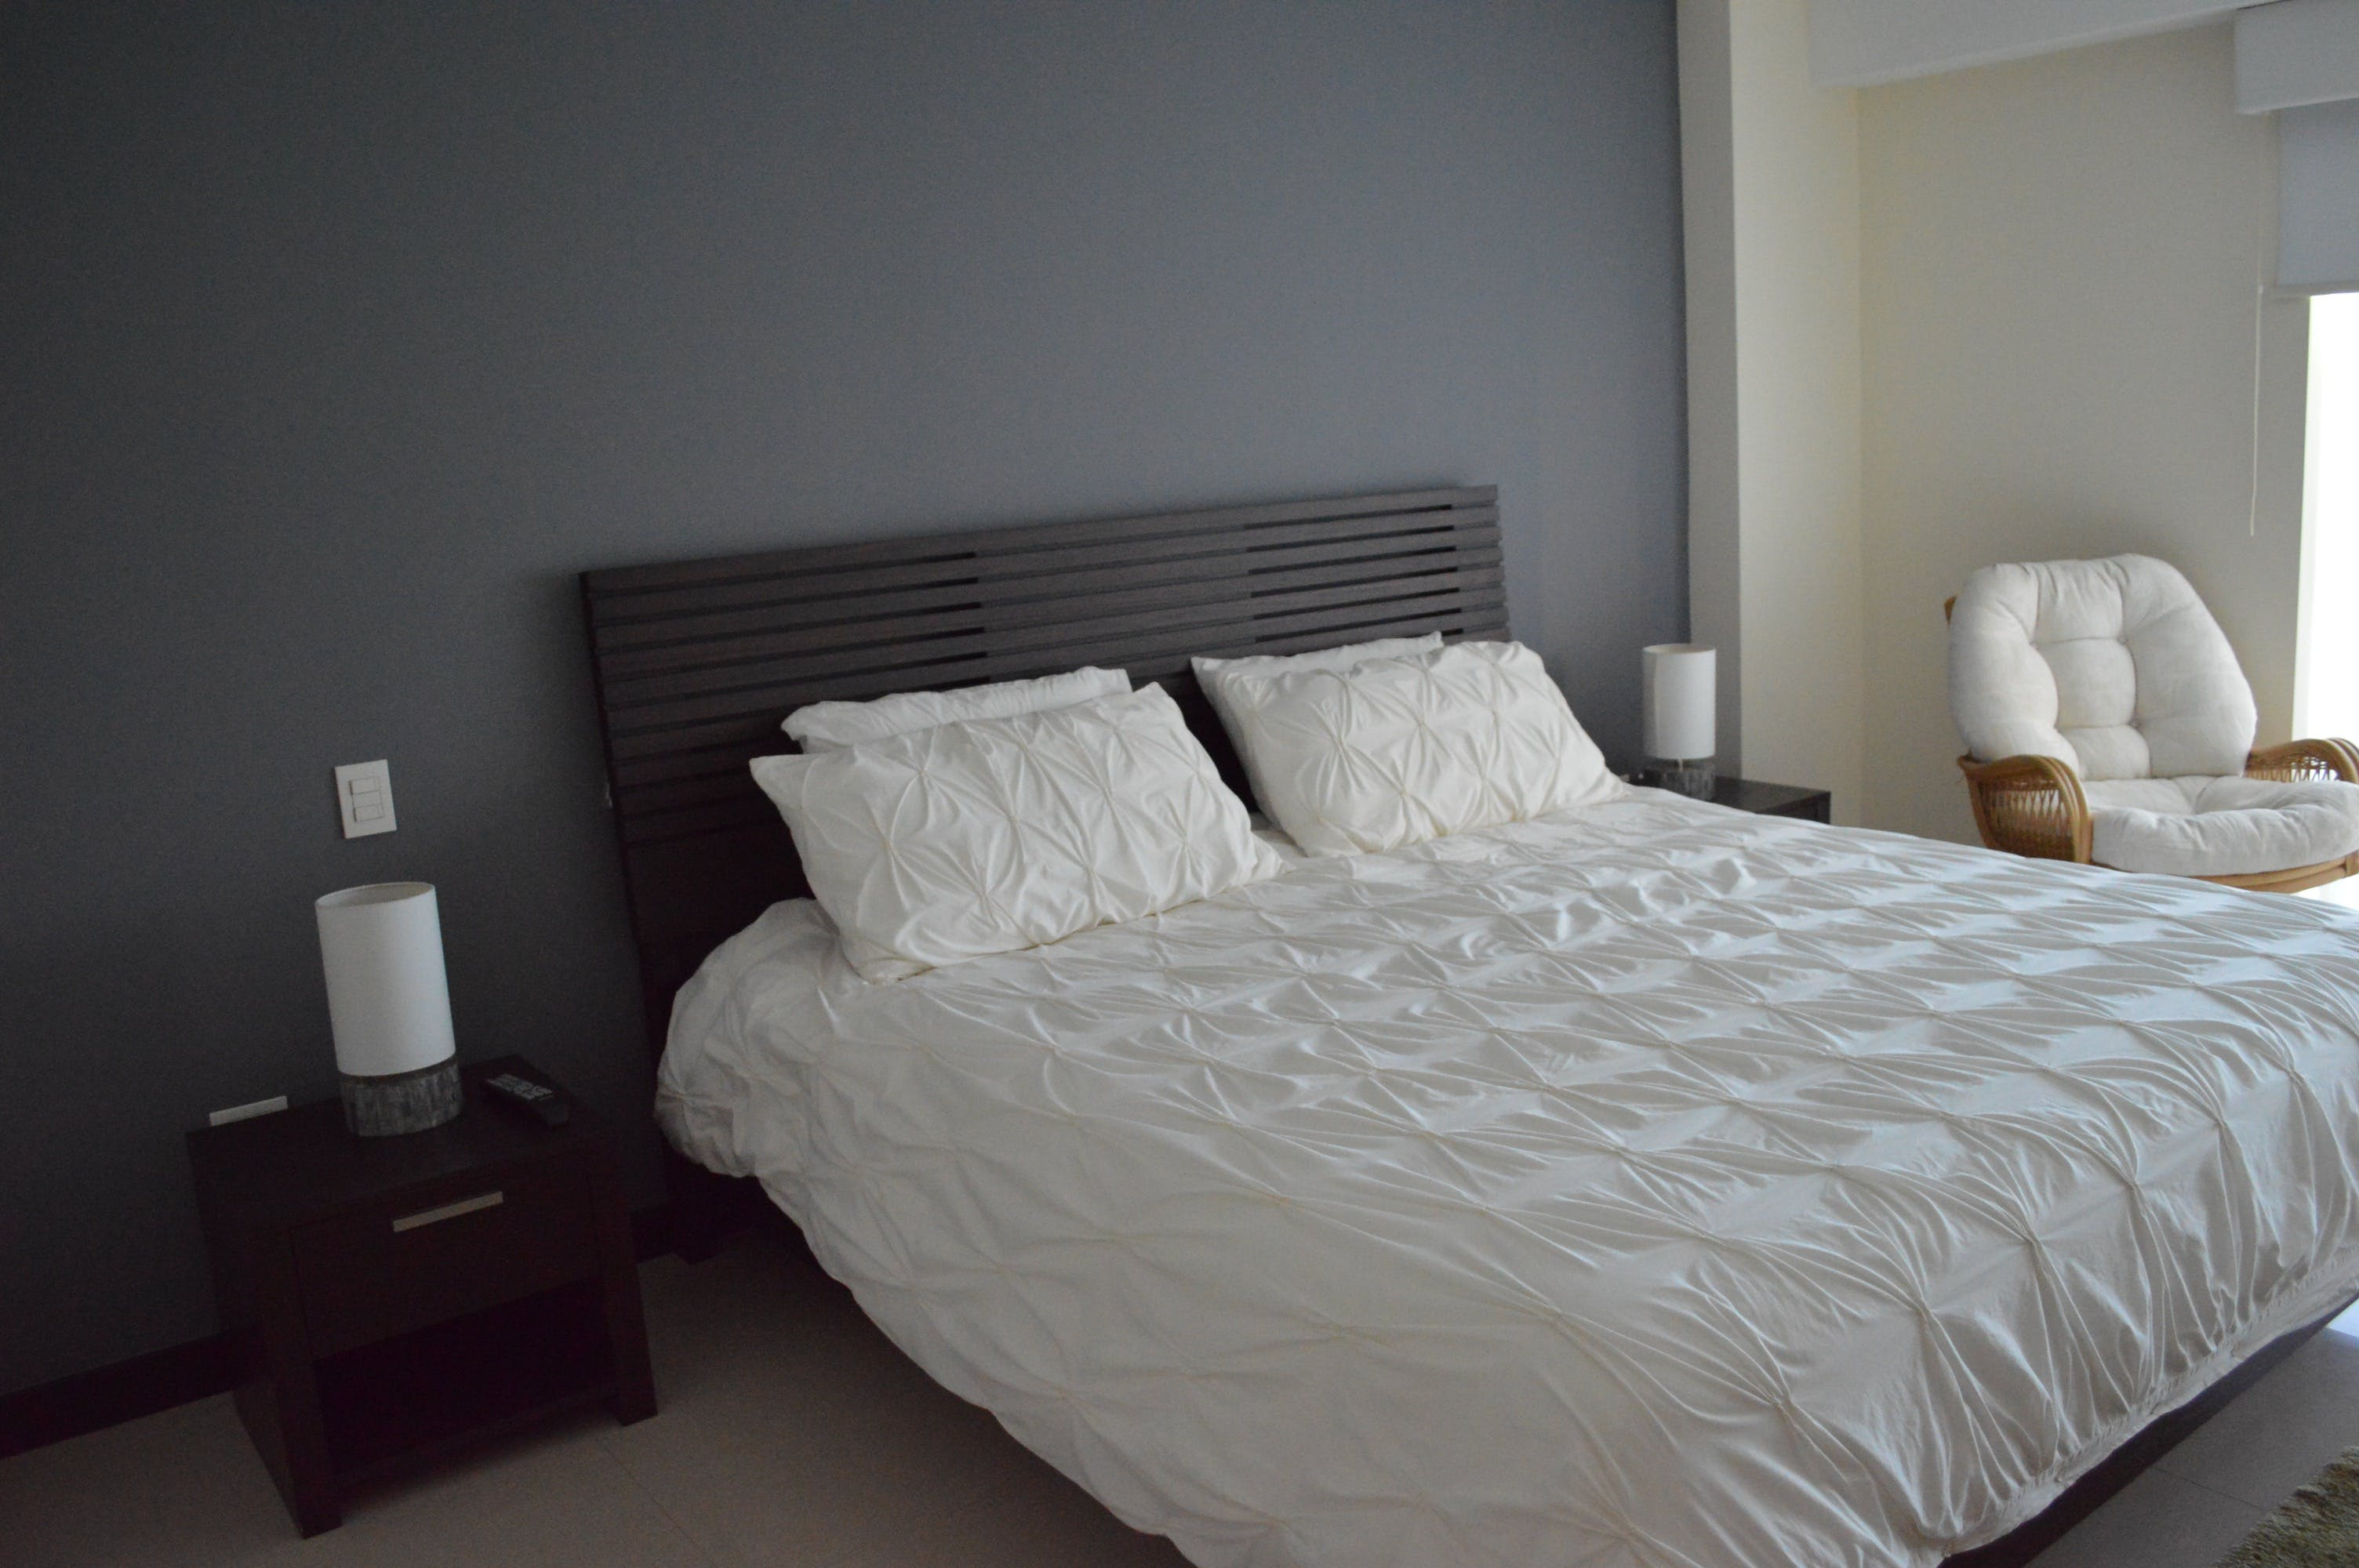 Apartment 215, Master Bedroom